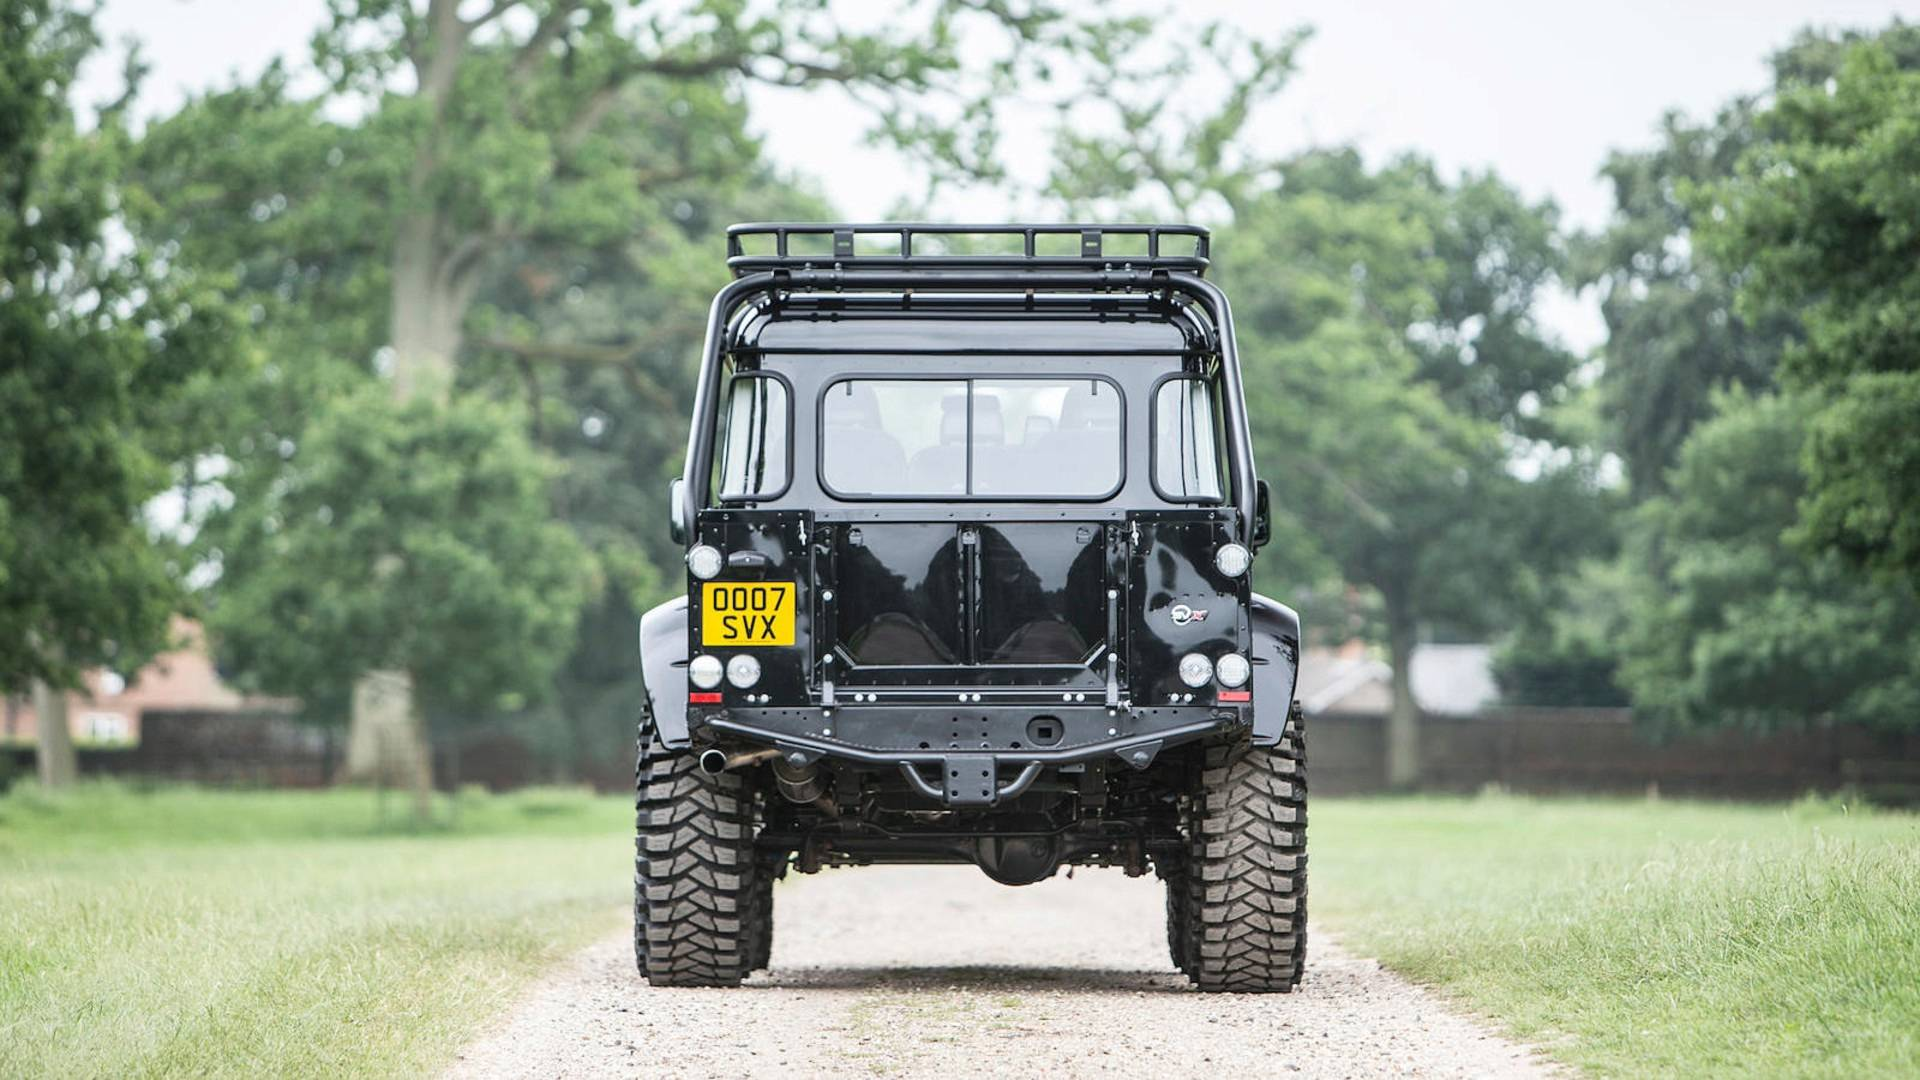 land-rover-defender-svx-from-james-bond-spectre-film (9)